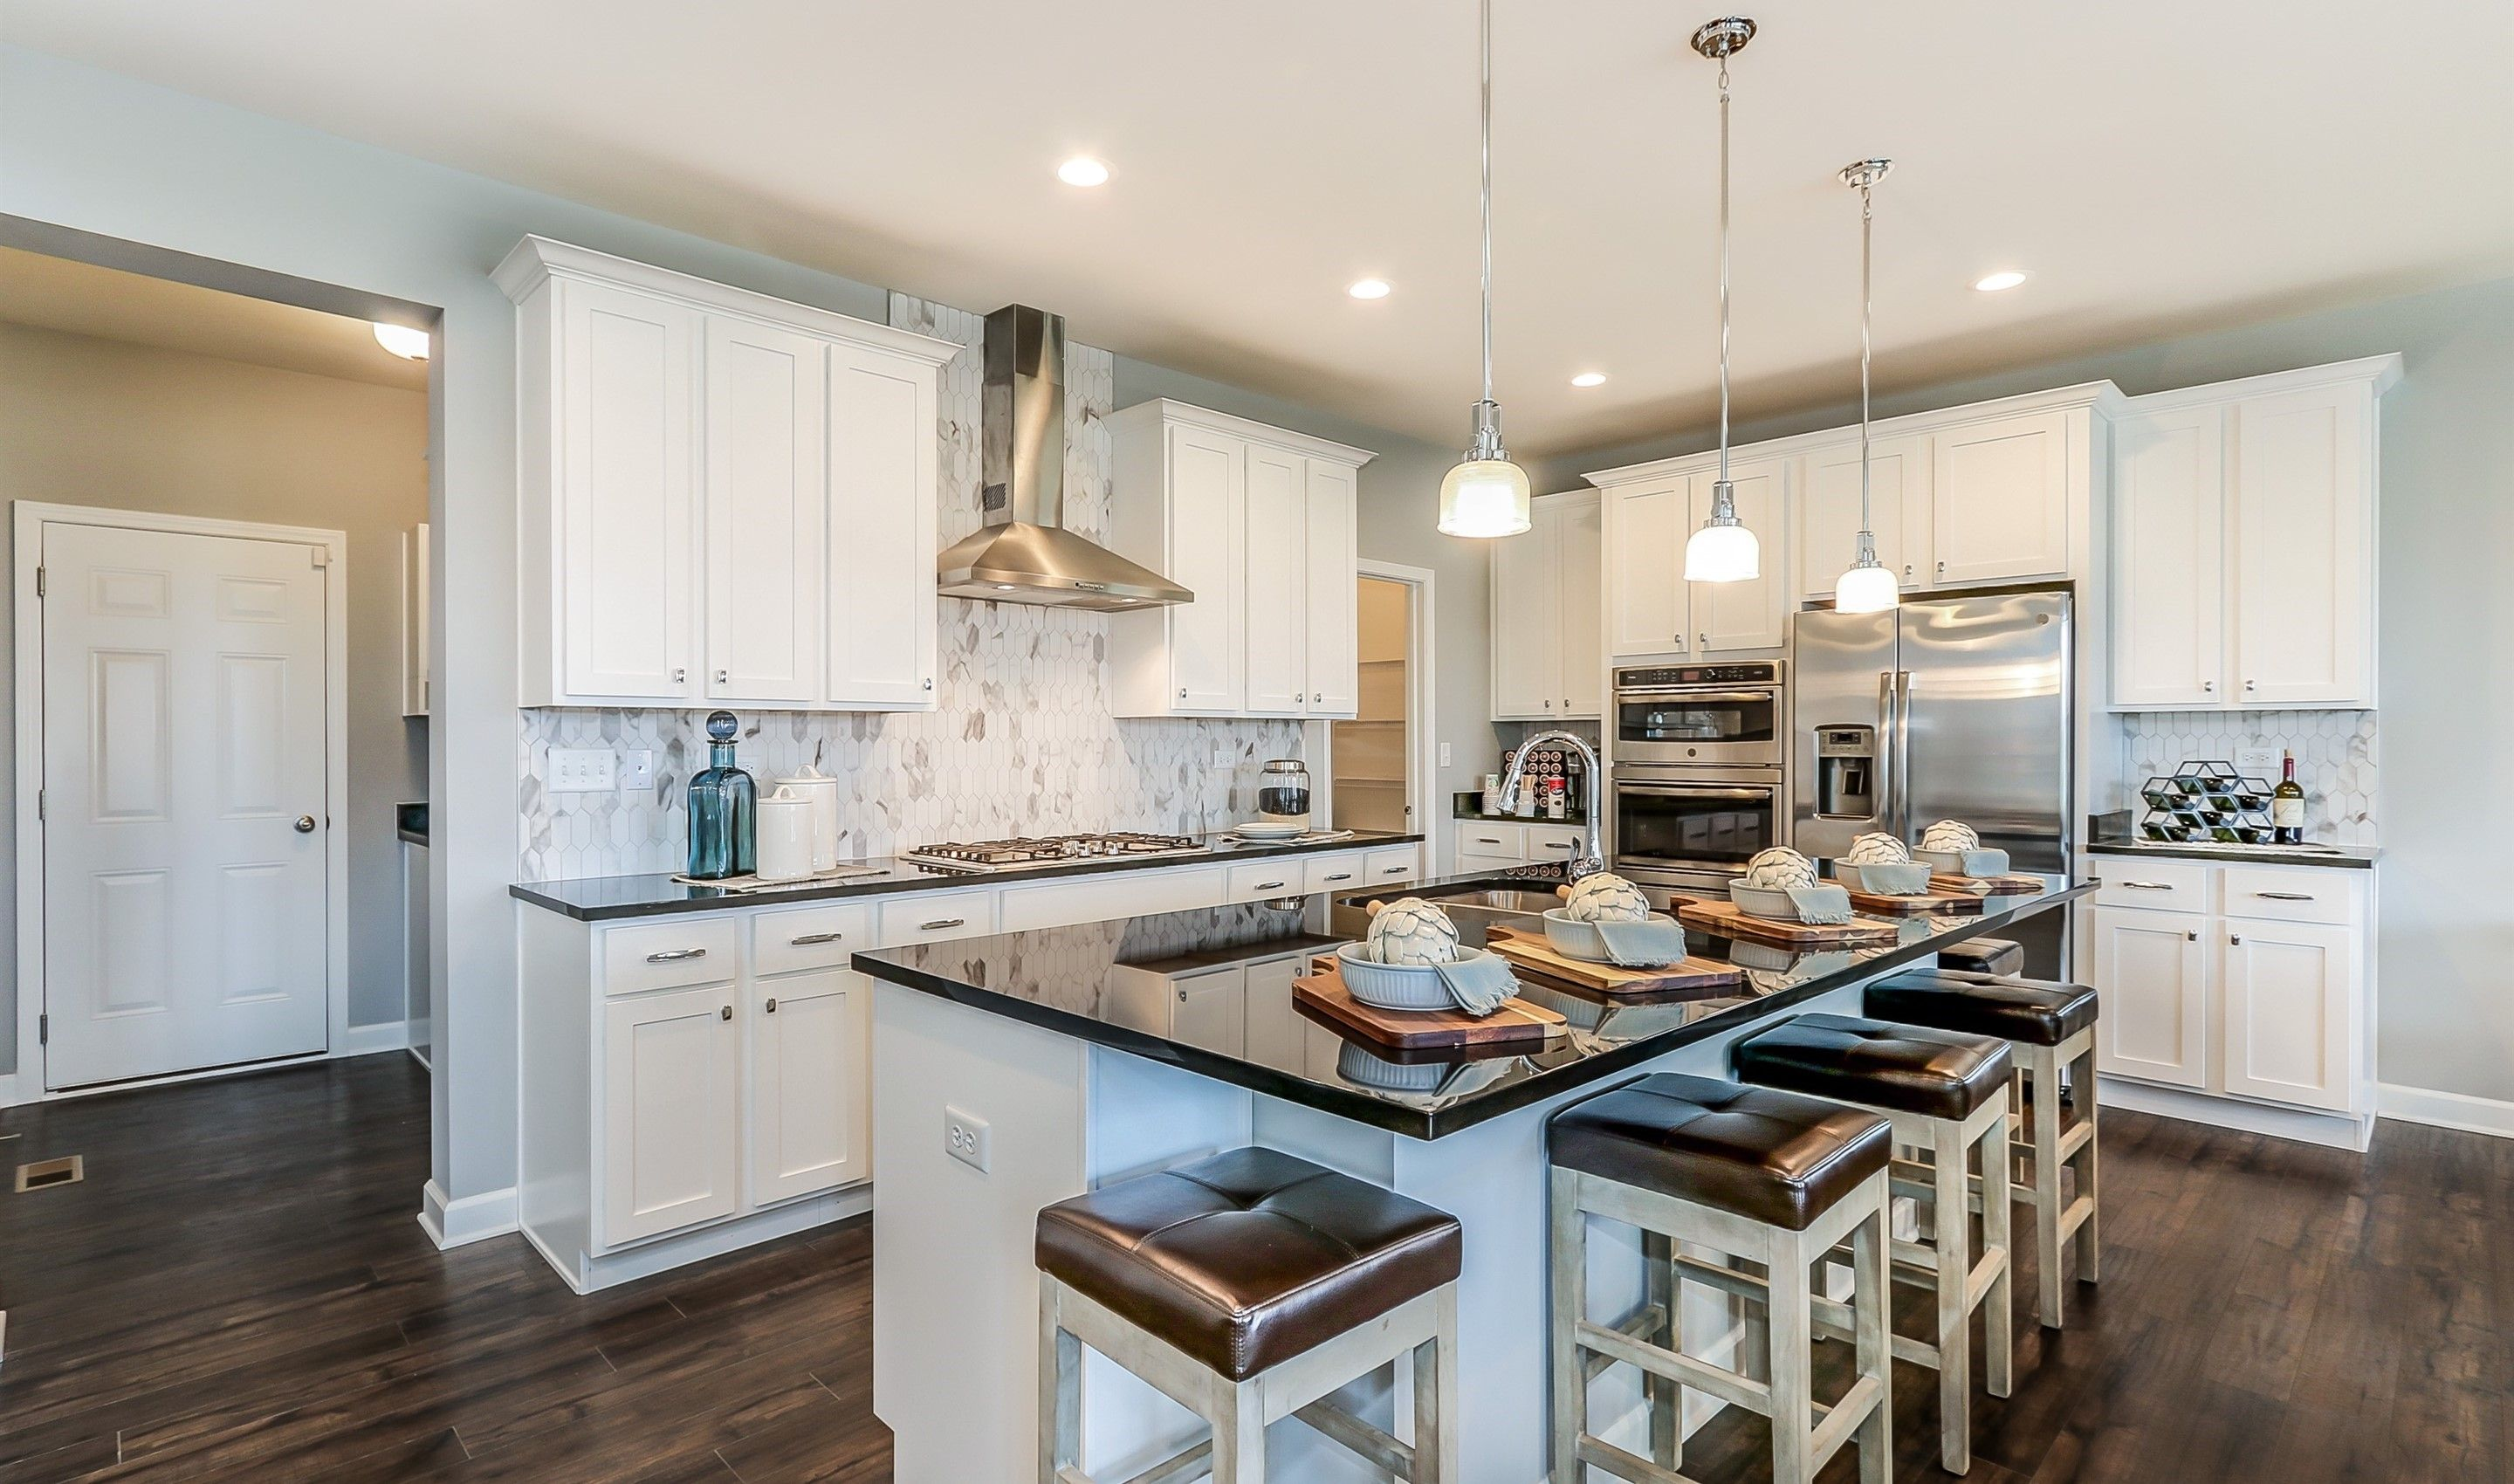 Kitchen featured in the Blakely By K. Hovnanian® Homes in Washington, VA